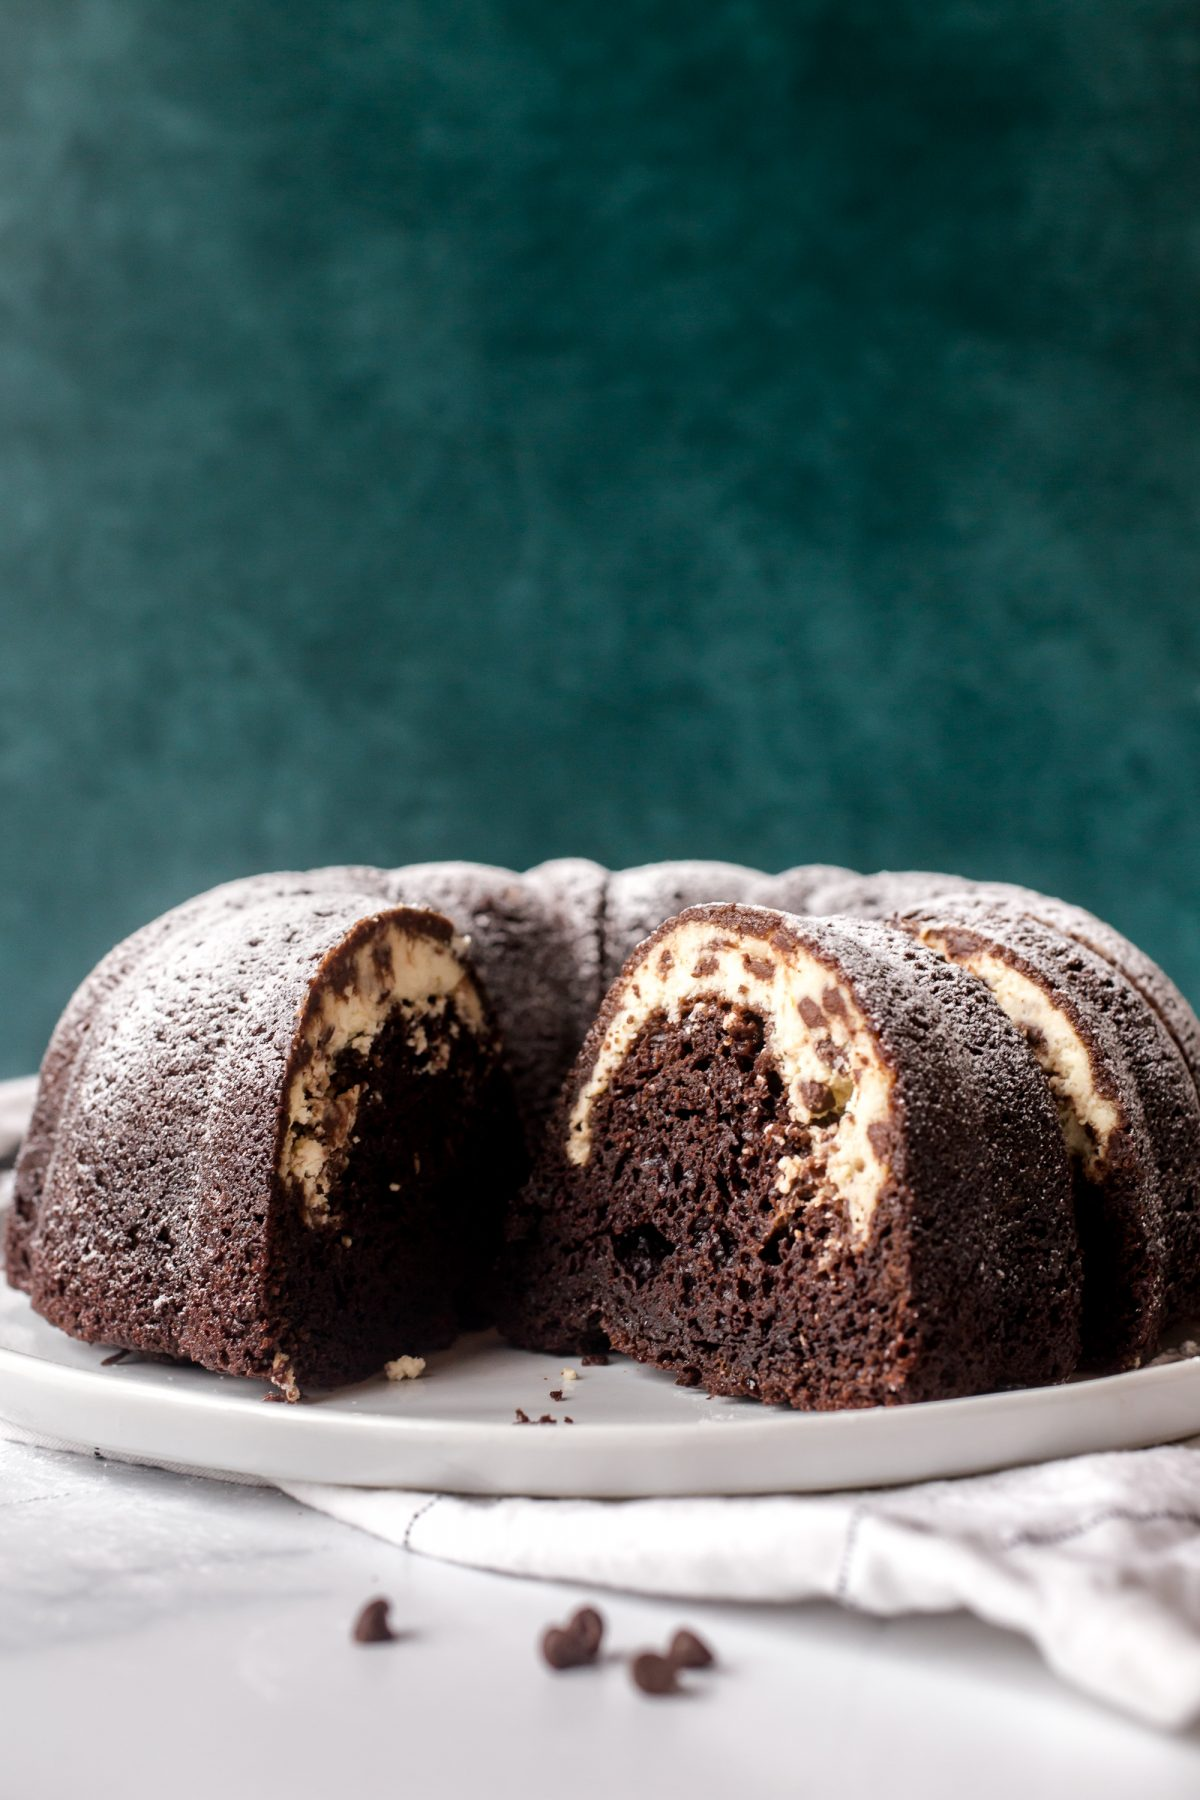 Side view of a chocolate cannoli bundt cake filled with ricotta, cream cheese, and chocolate chips